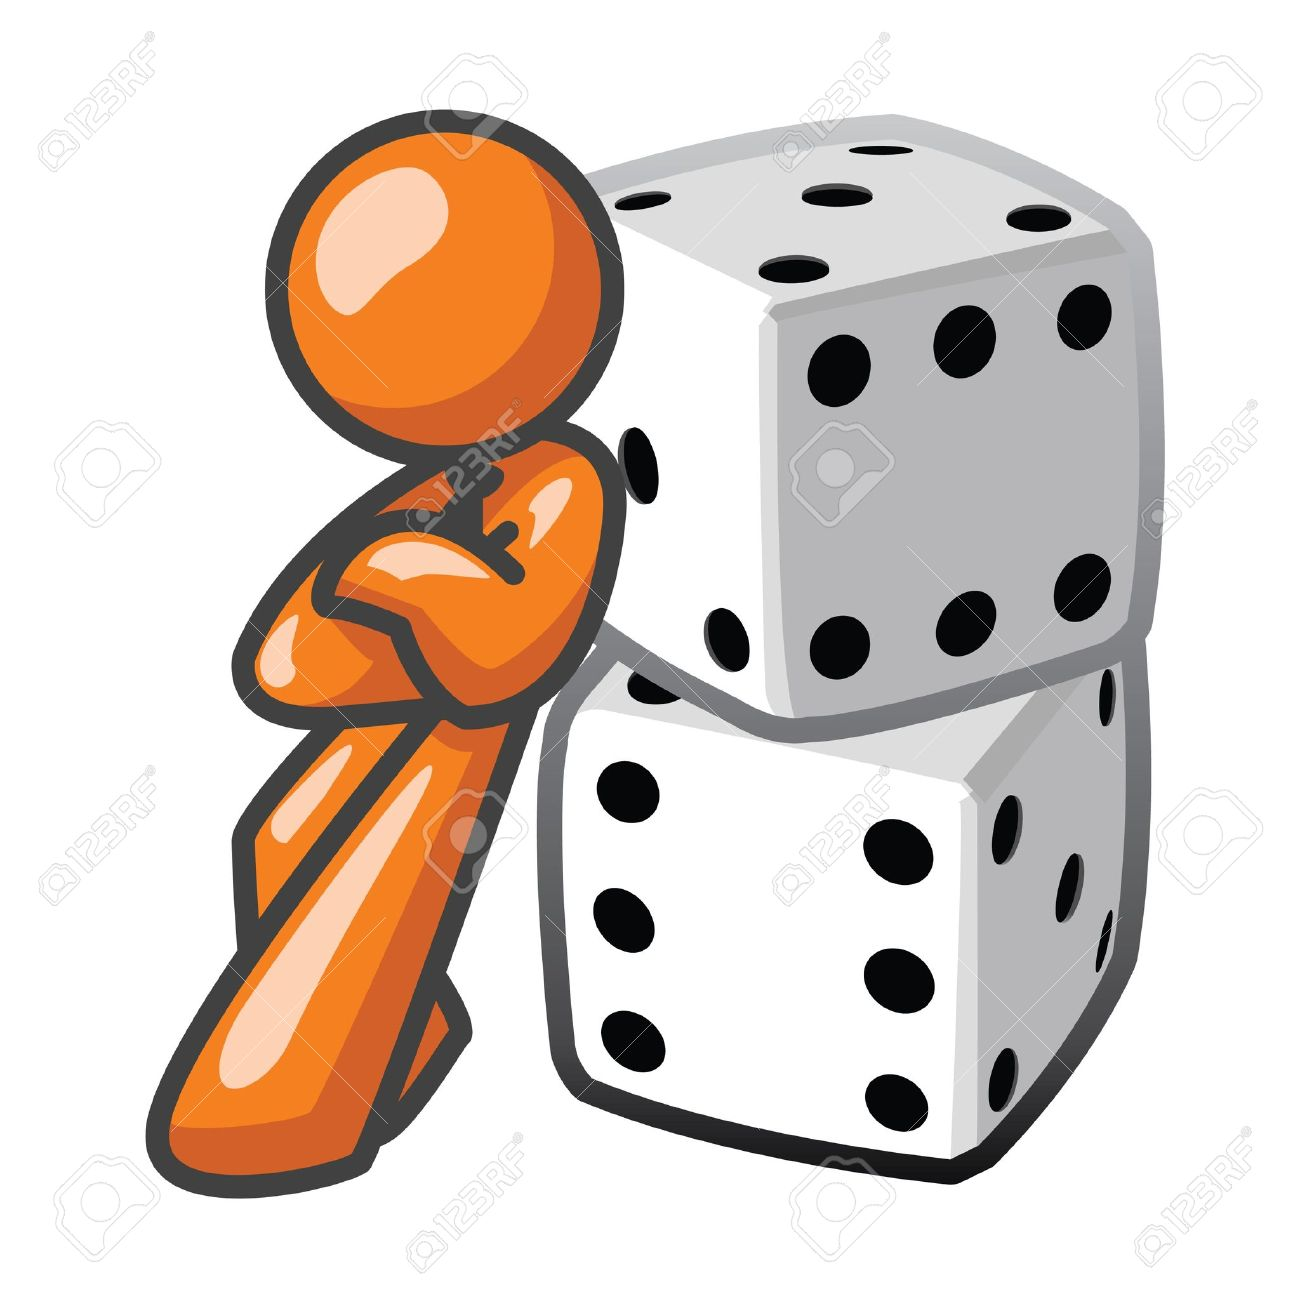 Orange Man Leaning Against Dice, Confident. Royalty Free Cliparts.